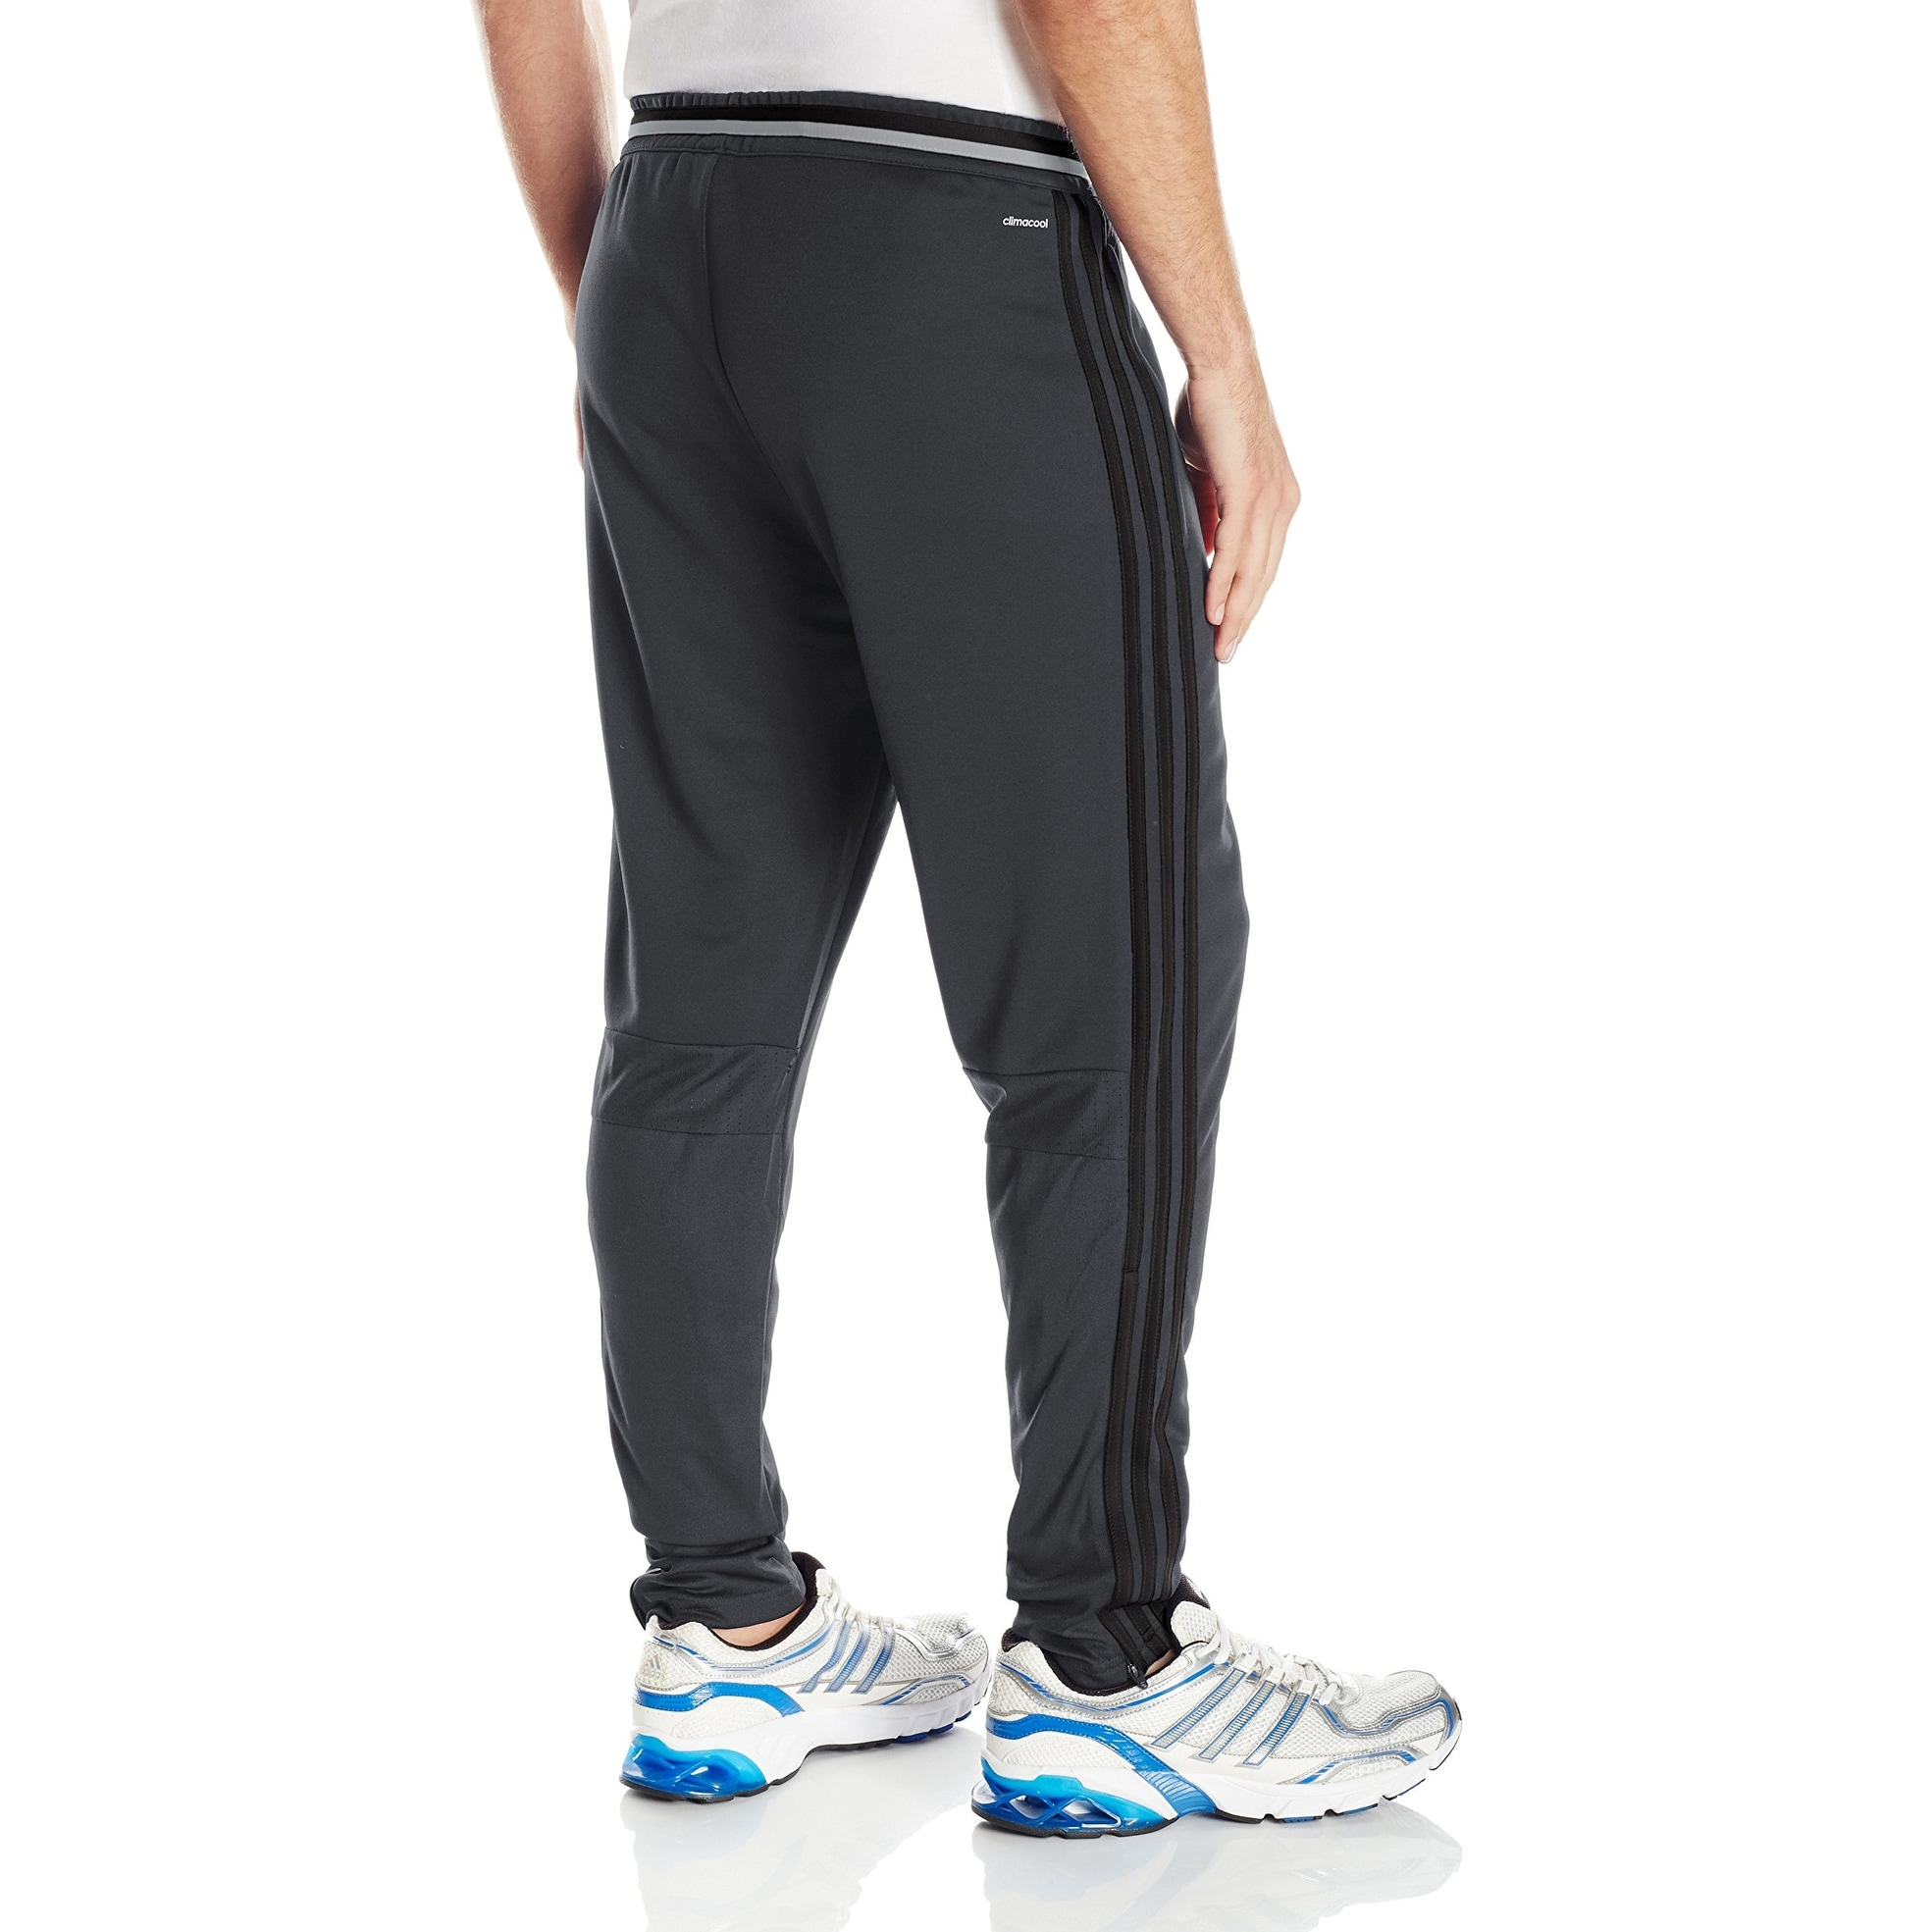 de5102b40 Shop Adidas Charcoal Gray Mens Size XL Jogging Condivo 16 Training Pants -  Free Shipping On Orders Over $45 - Overstock - 27675580